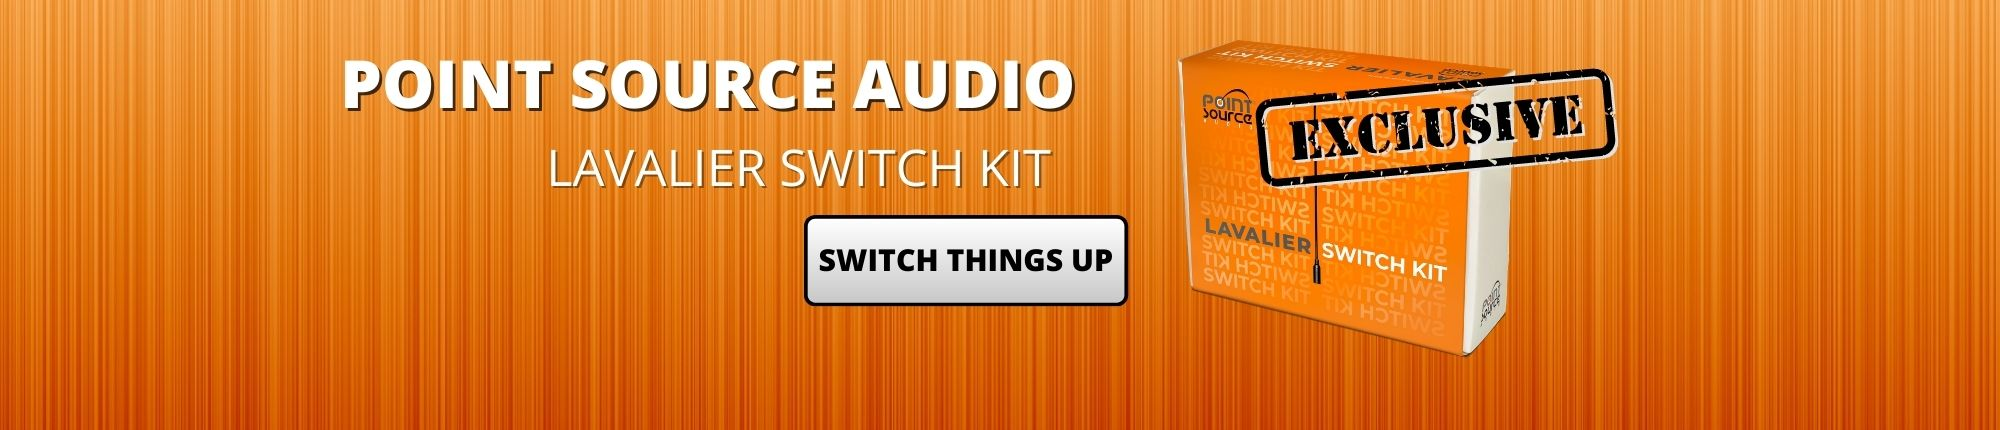 Point Source Audio Banner - Lav Switch Kit